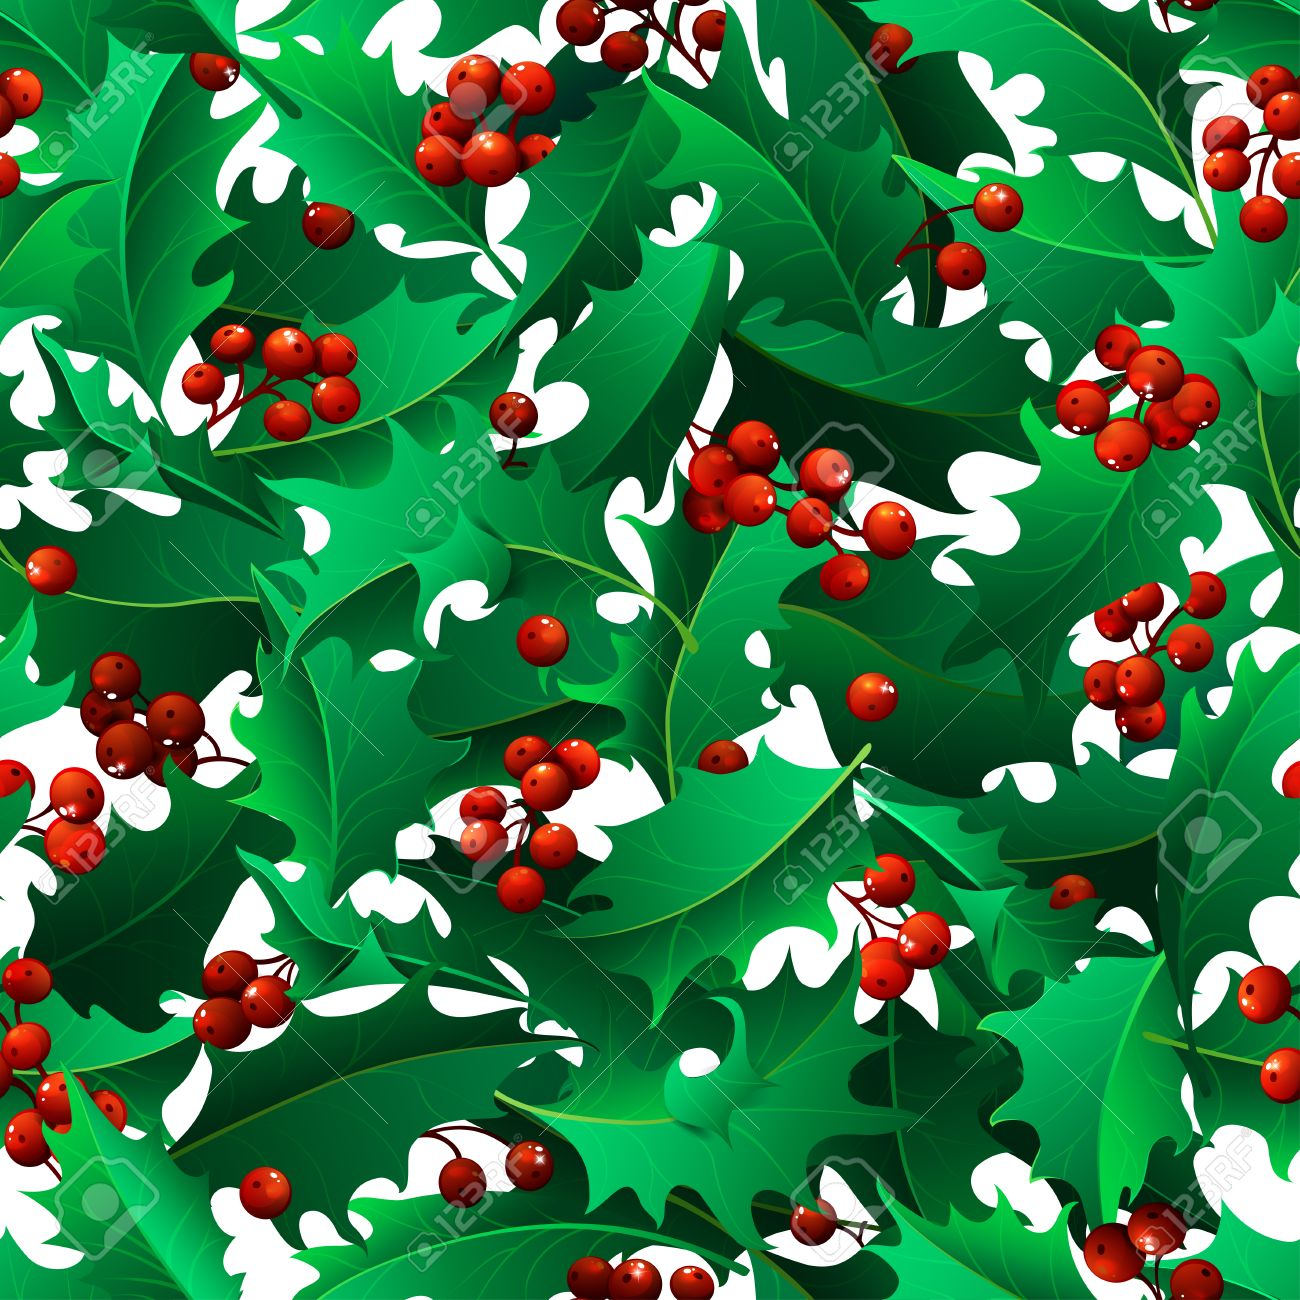 vector christmas mistletoe boundless background. holly leaves